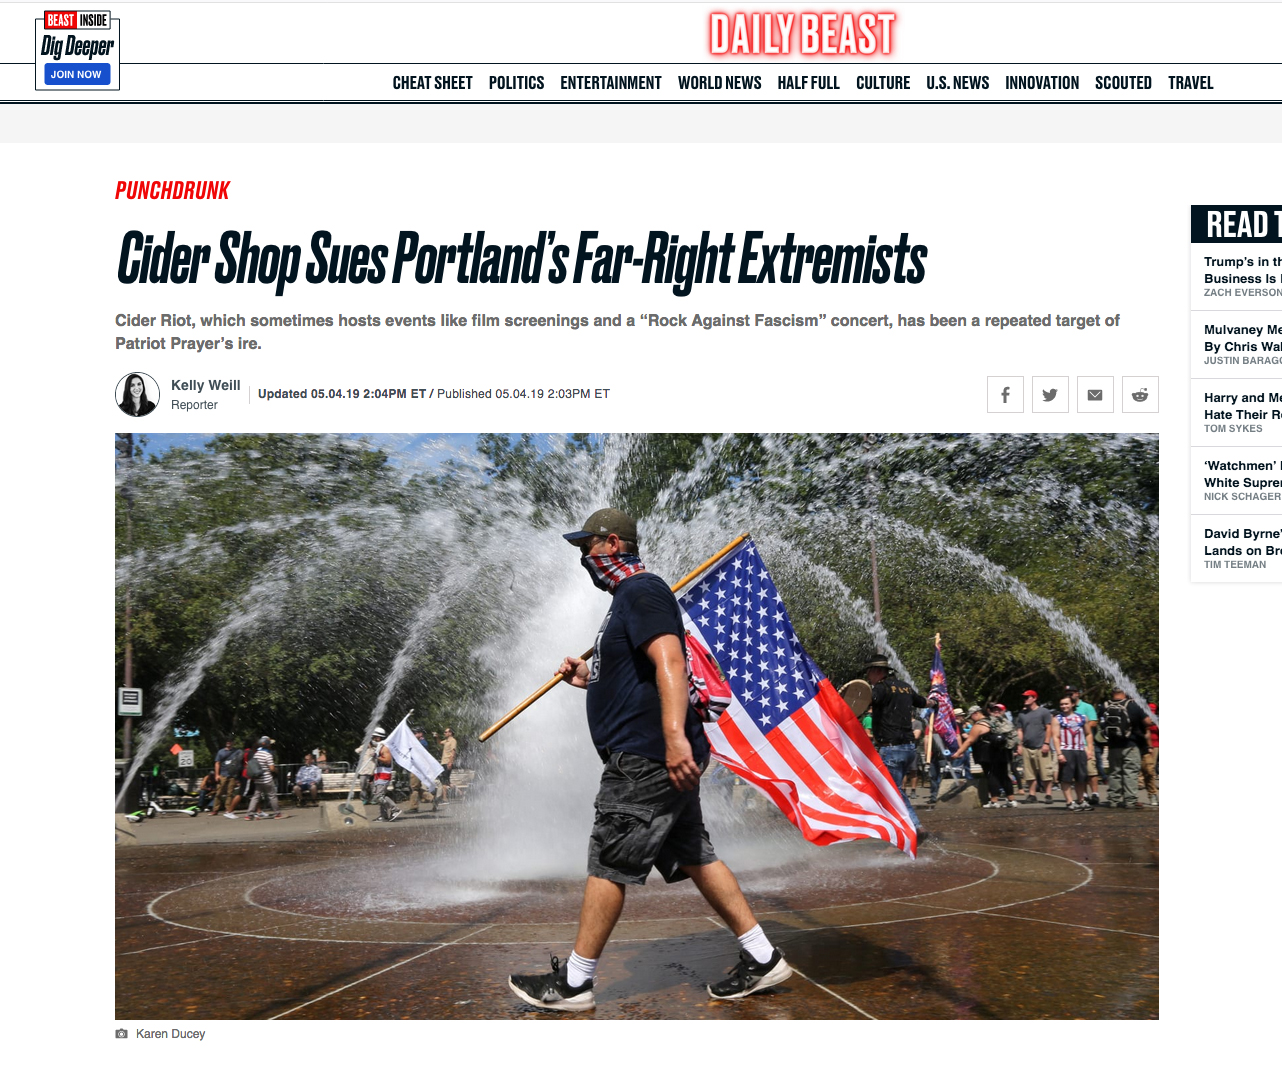 {quote}Cider Shop Sues Portland's Far-Right Extremists{quote}, Newsweek, May 4, 2019